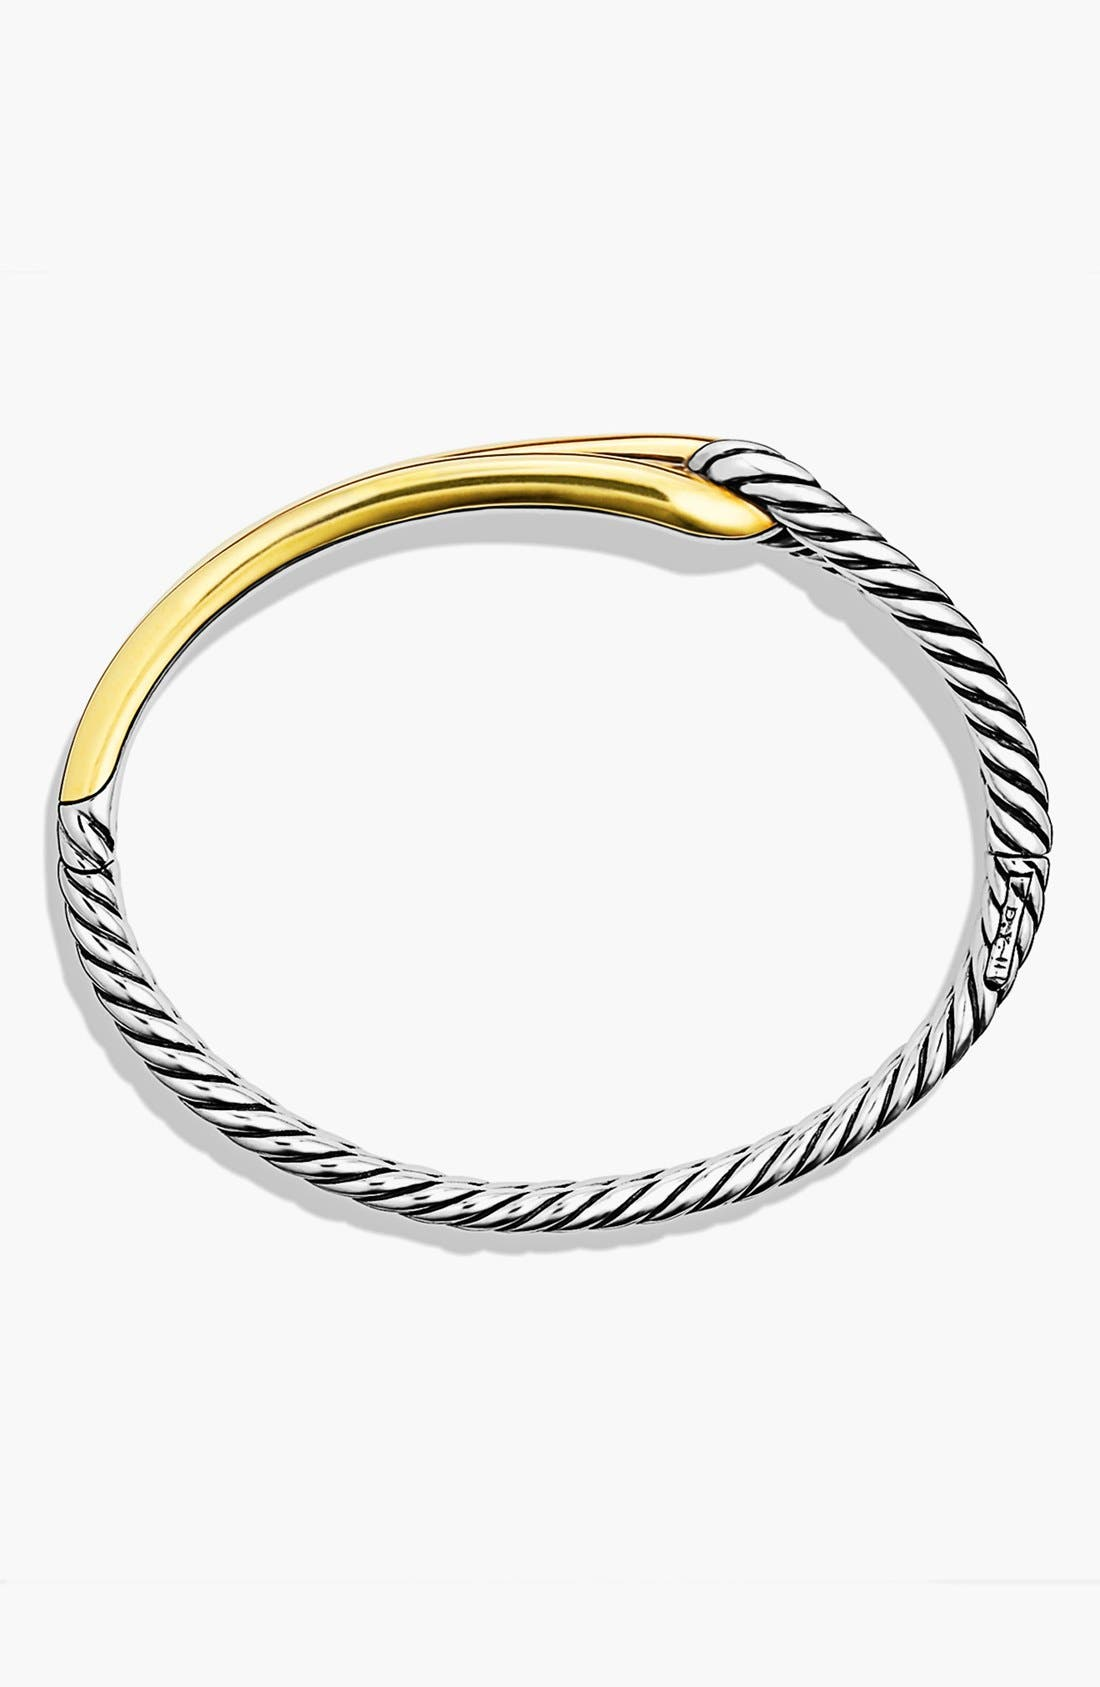 'Labyrinth' Single-Loop Bracelet with Gold,                             Alternate thumbnail 4, color,                             TWO TONE